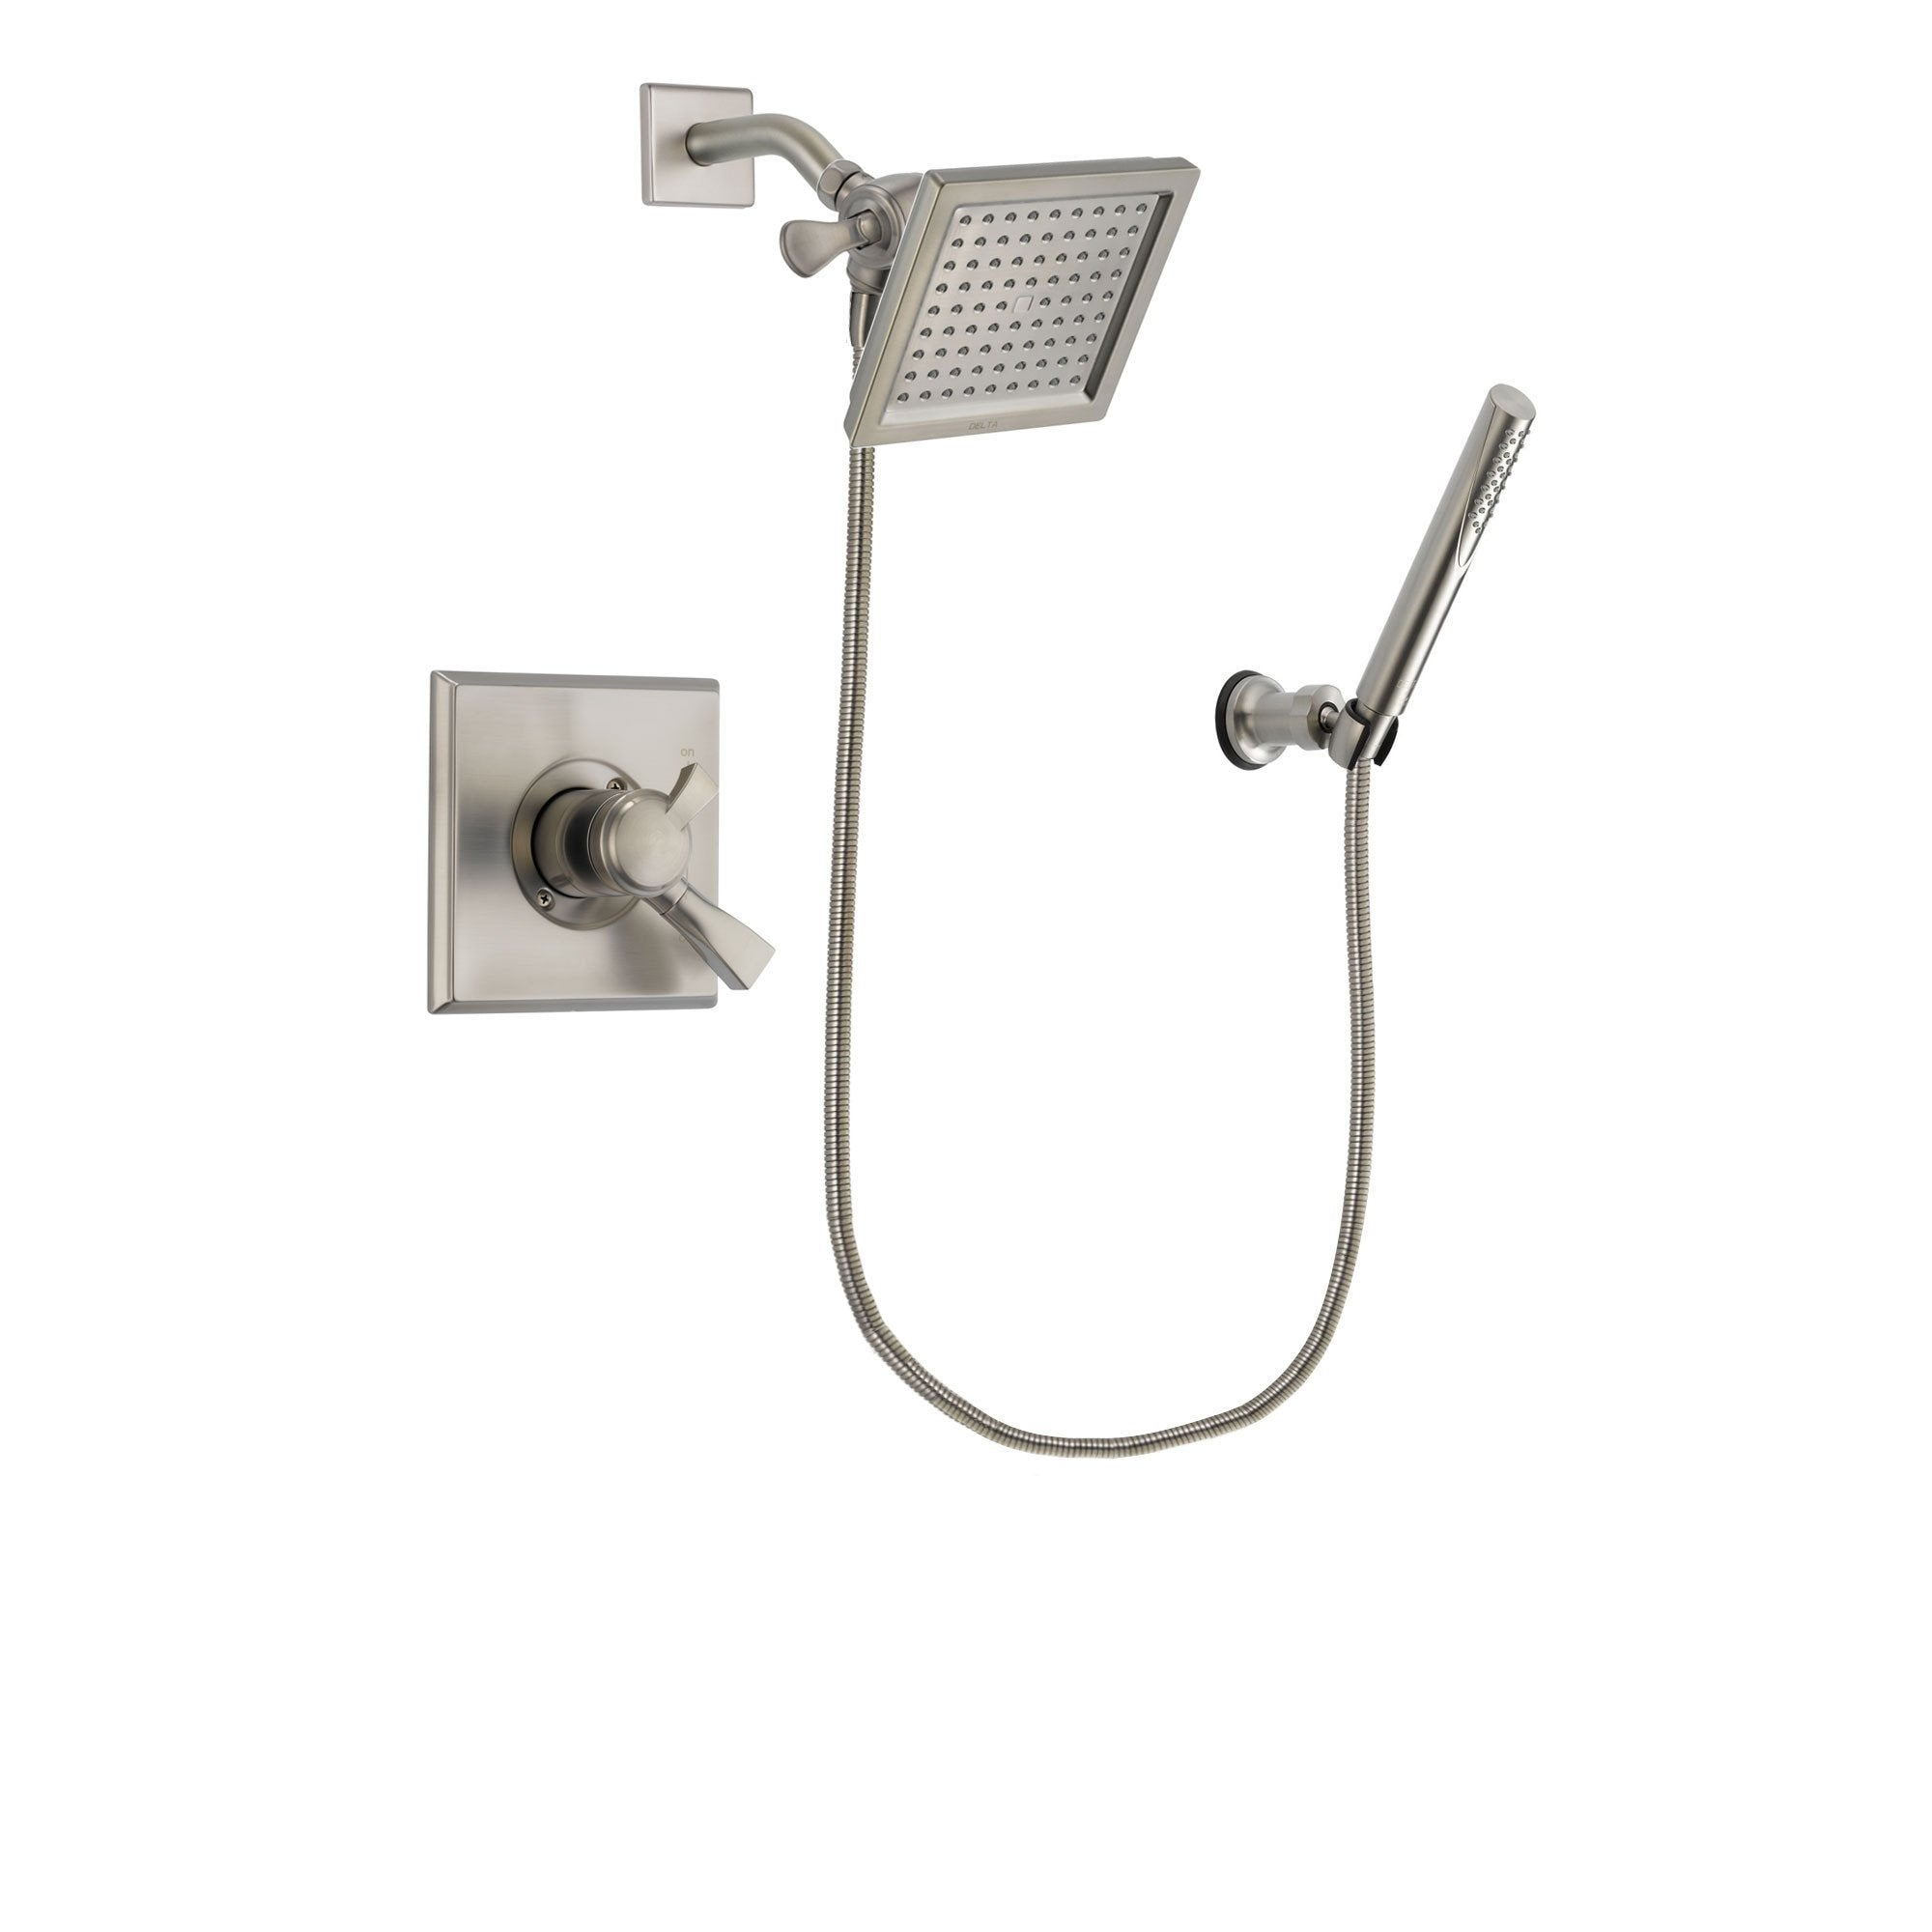 Delta Dryden Stainless Steel Finish Shower Faucet System w/ Hand Spray DSP2142V